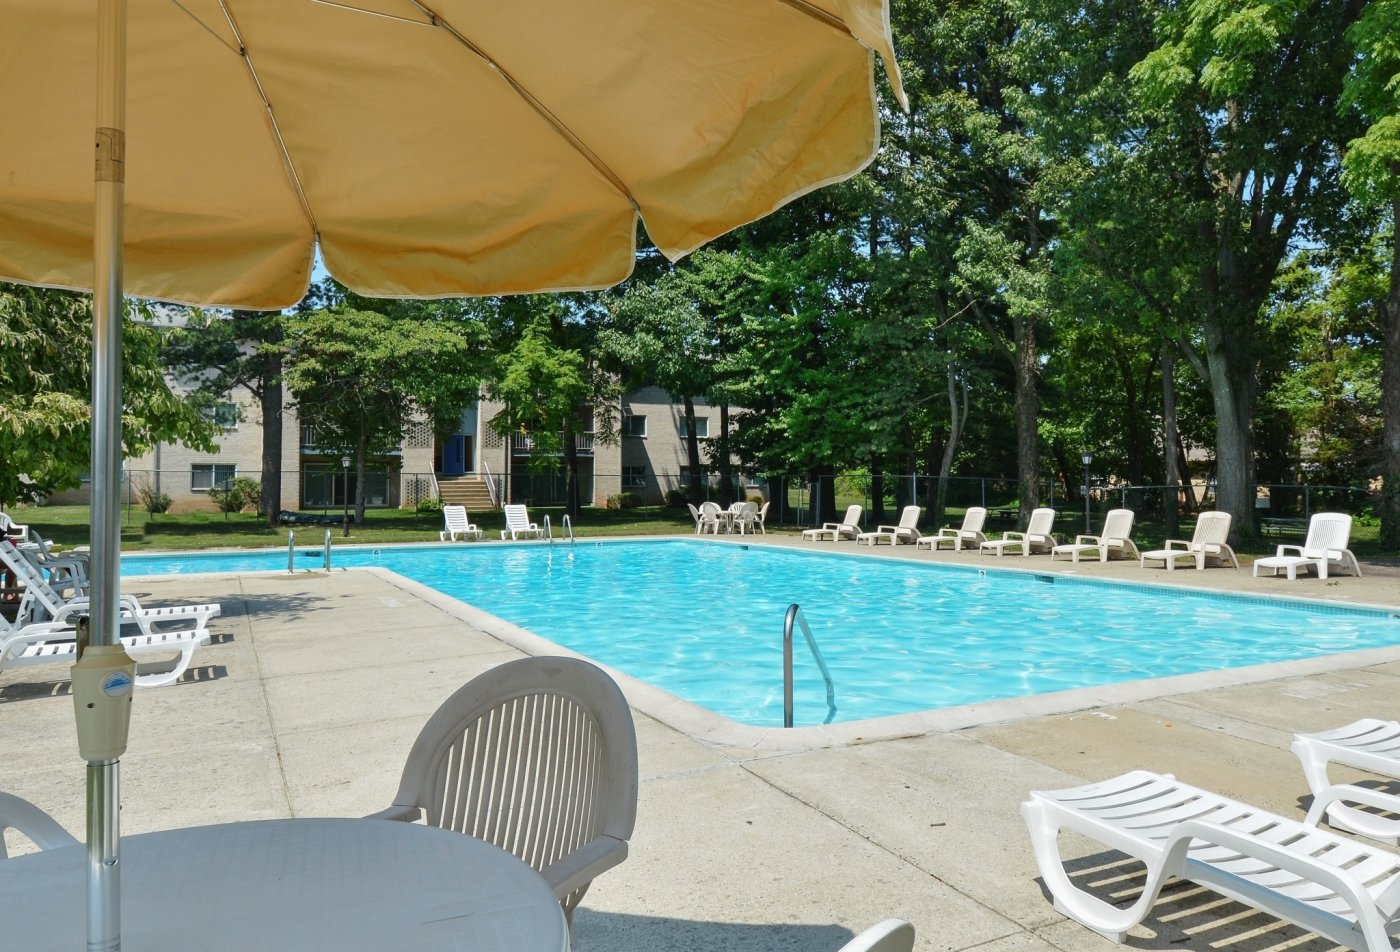 Swimming Pool | Apartment Homes in Lansdale, PA | Valley Stream Apartments